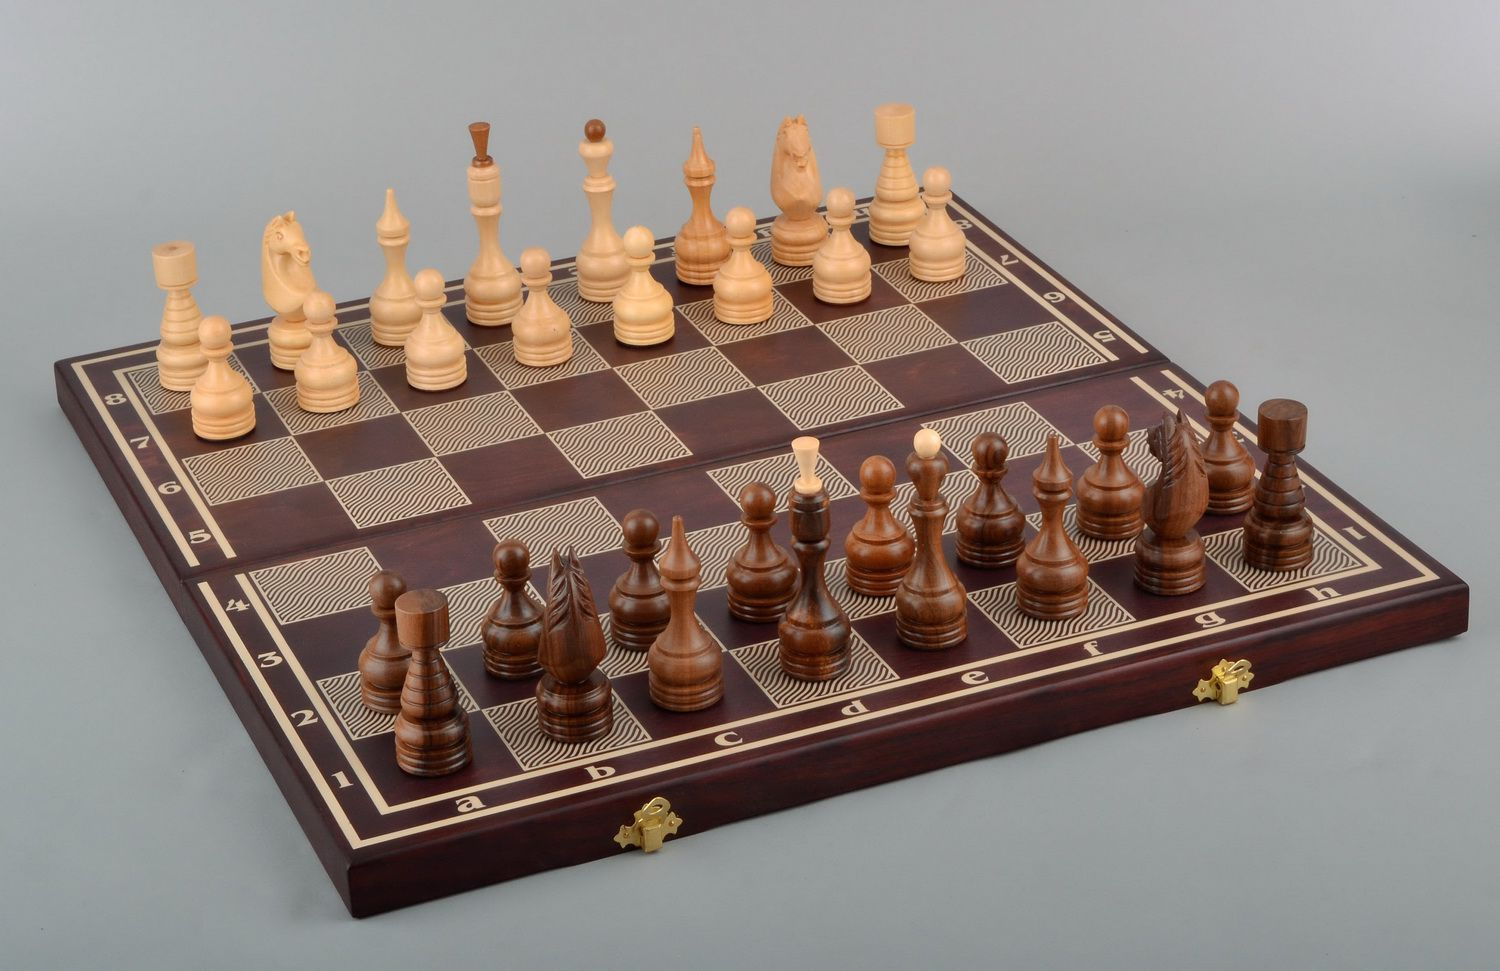 Wooden chess set 3 in 1 checkers, chess and backgammon photo 2